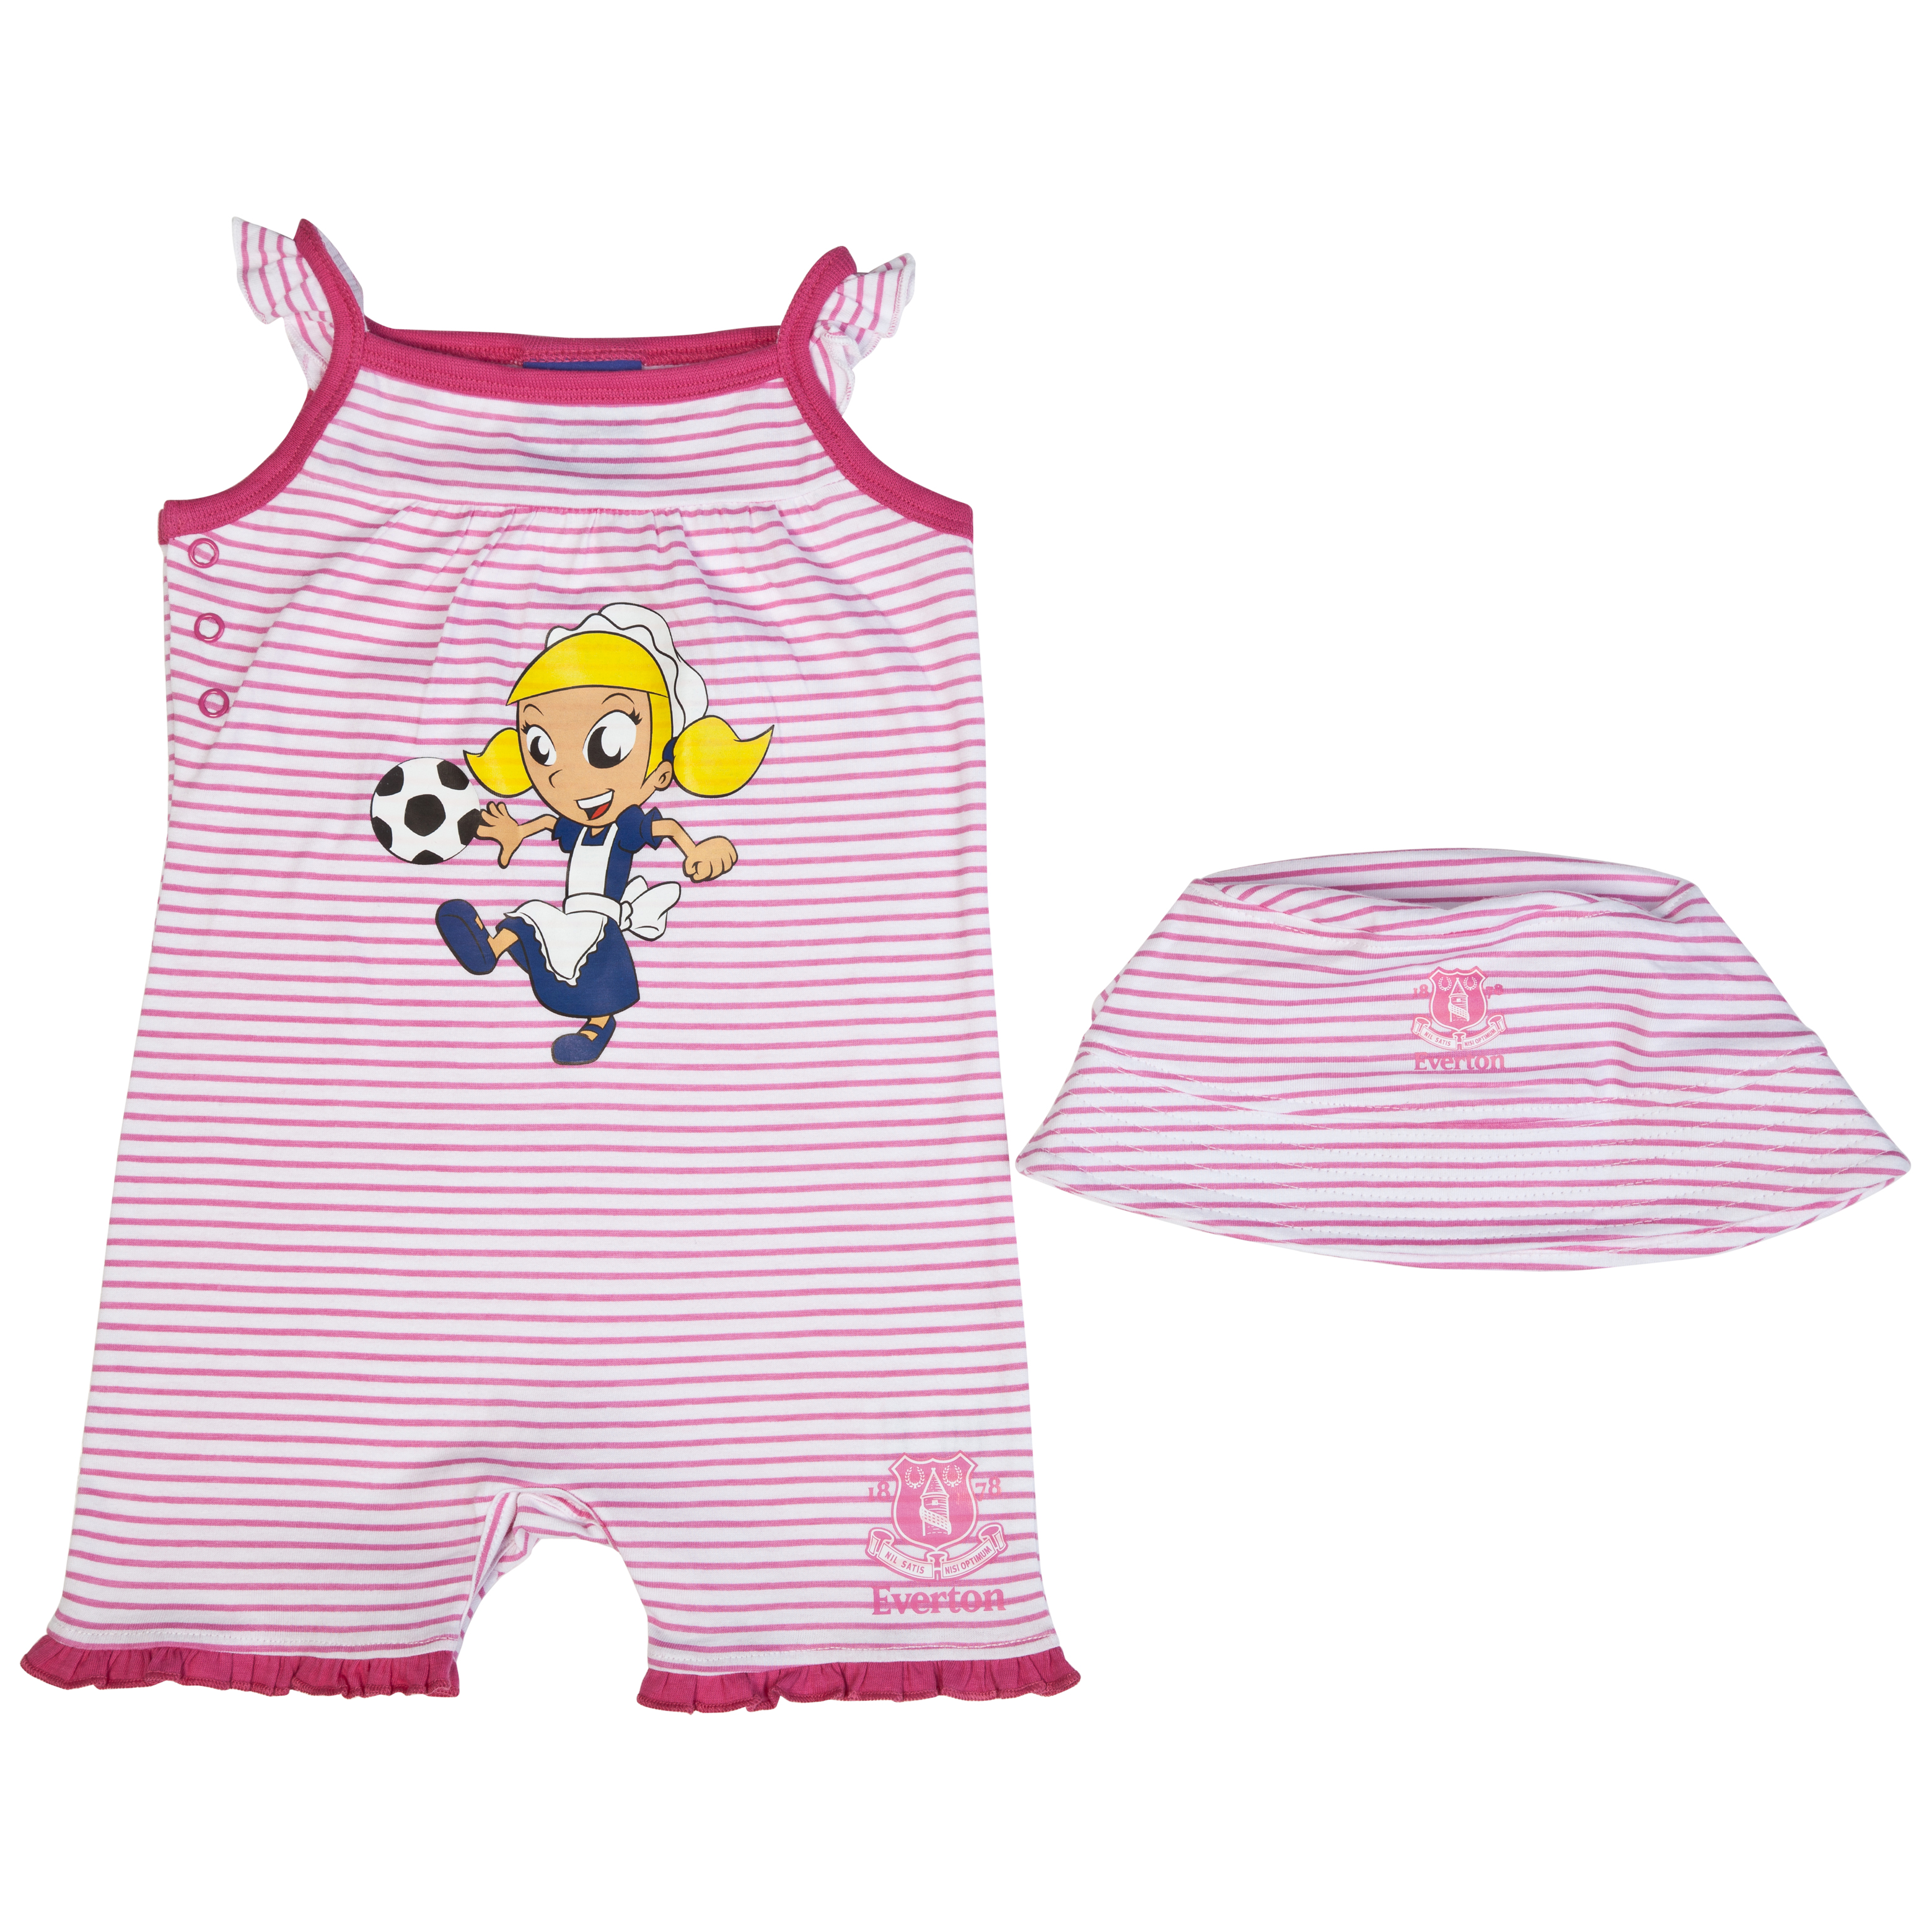 Everton Toffee Girl Romper and Hat - Pink/White - Baby